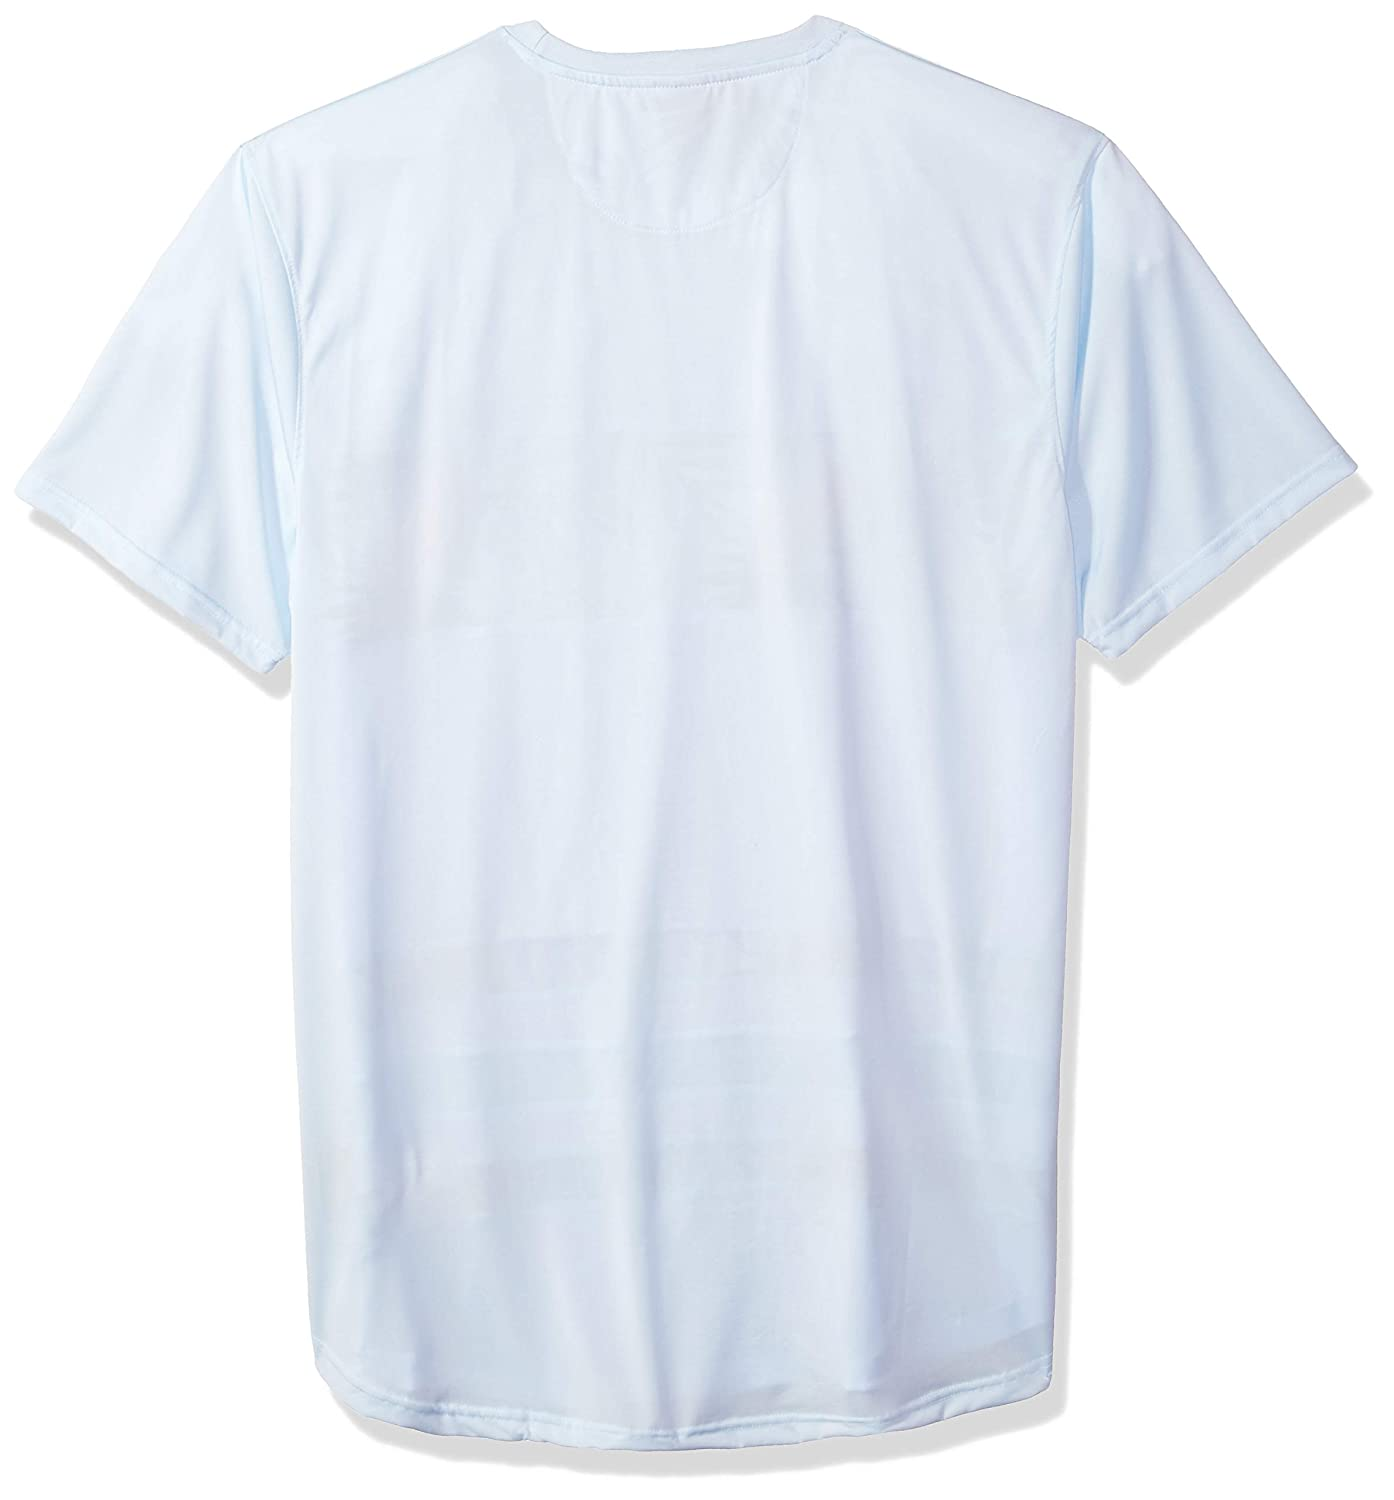 Rocawear Mens Short Sleeve Crew Neck Tee Shirt